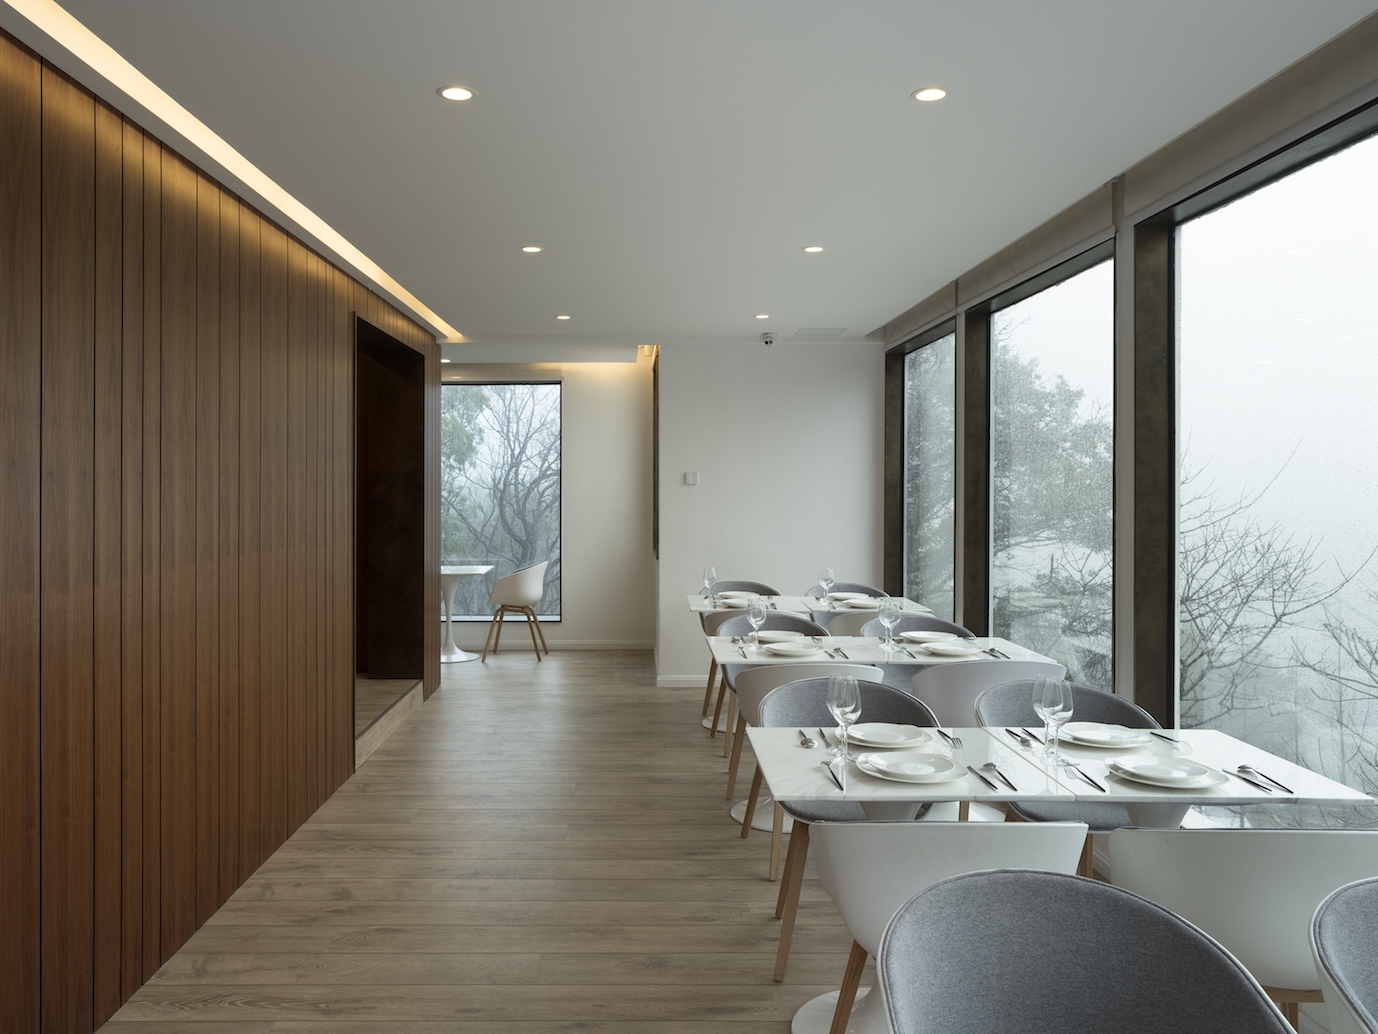 Led recessed lighting fixtures review upshine lighting best recessed lighting arubaitofo Images